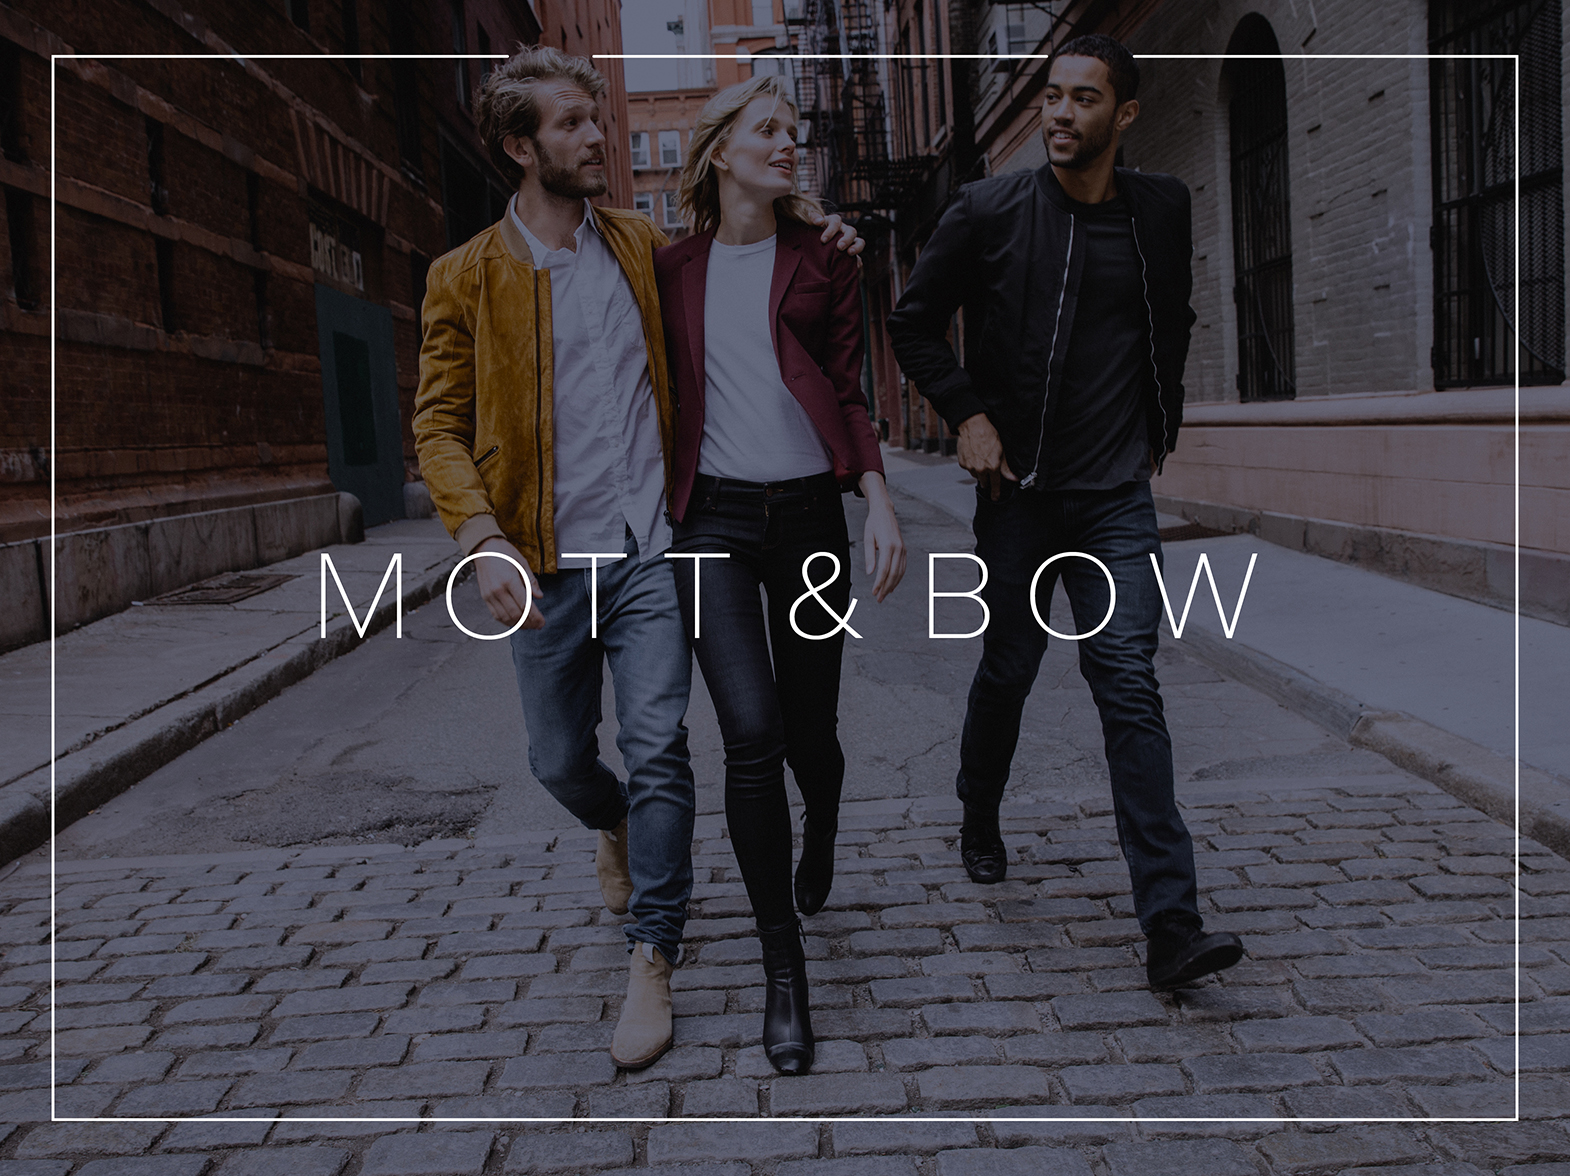 mott-and-bow-landing-page-design.jpg